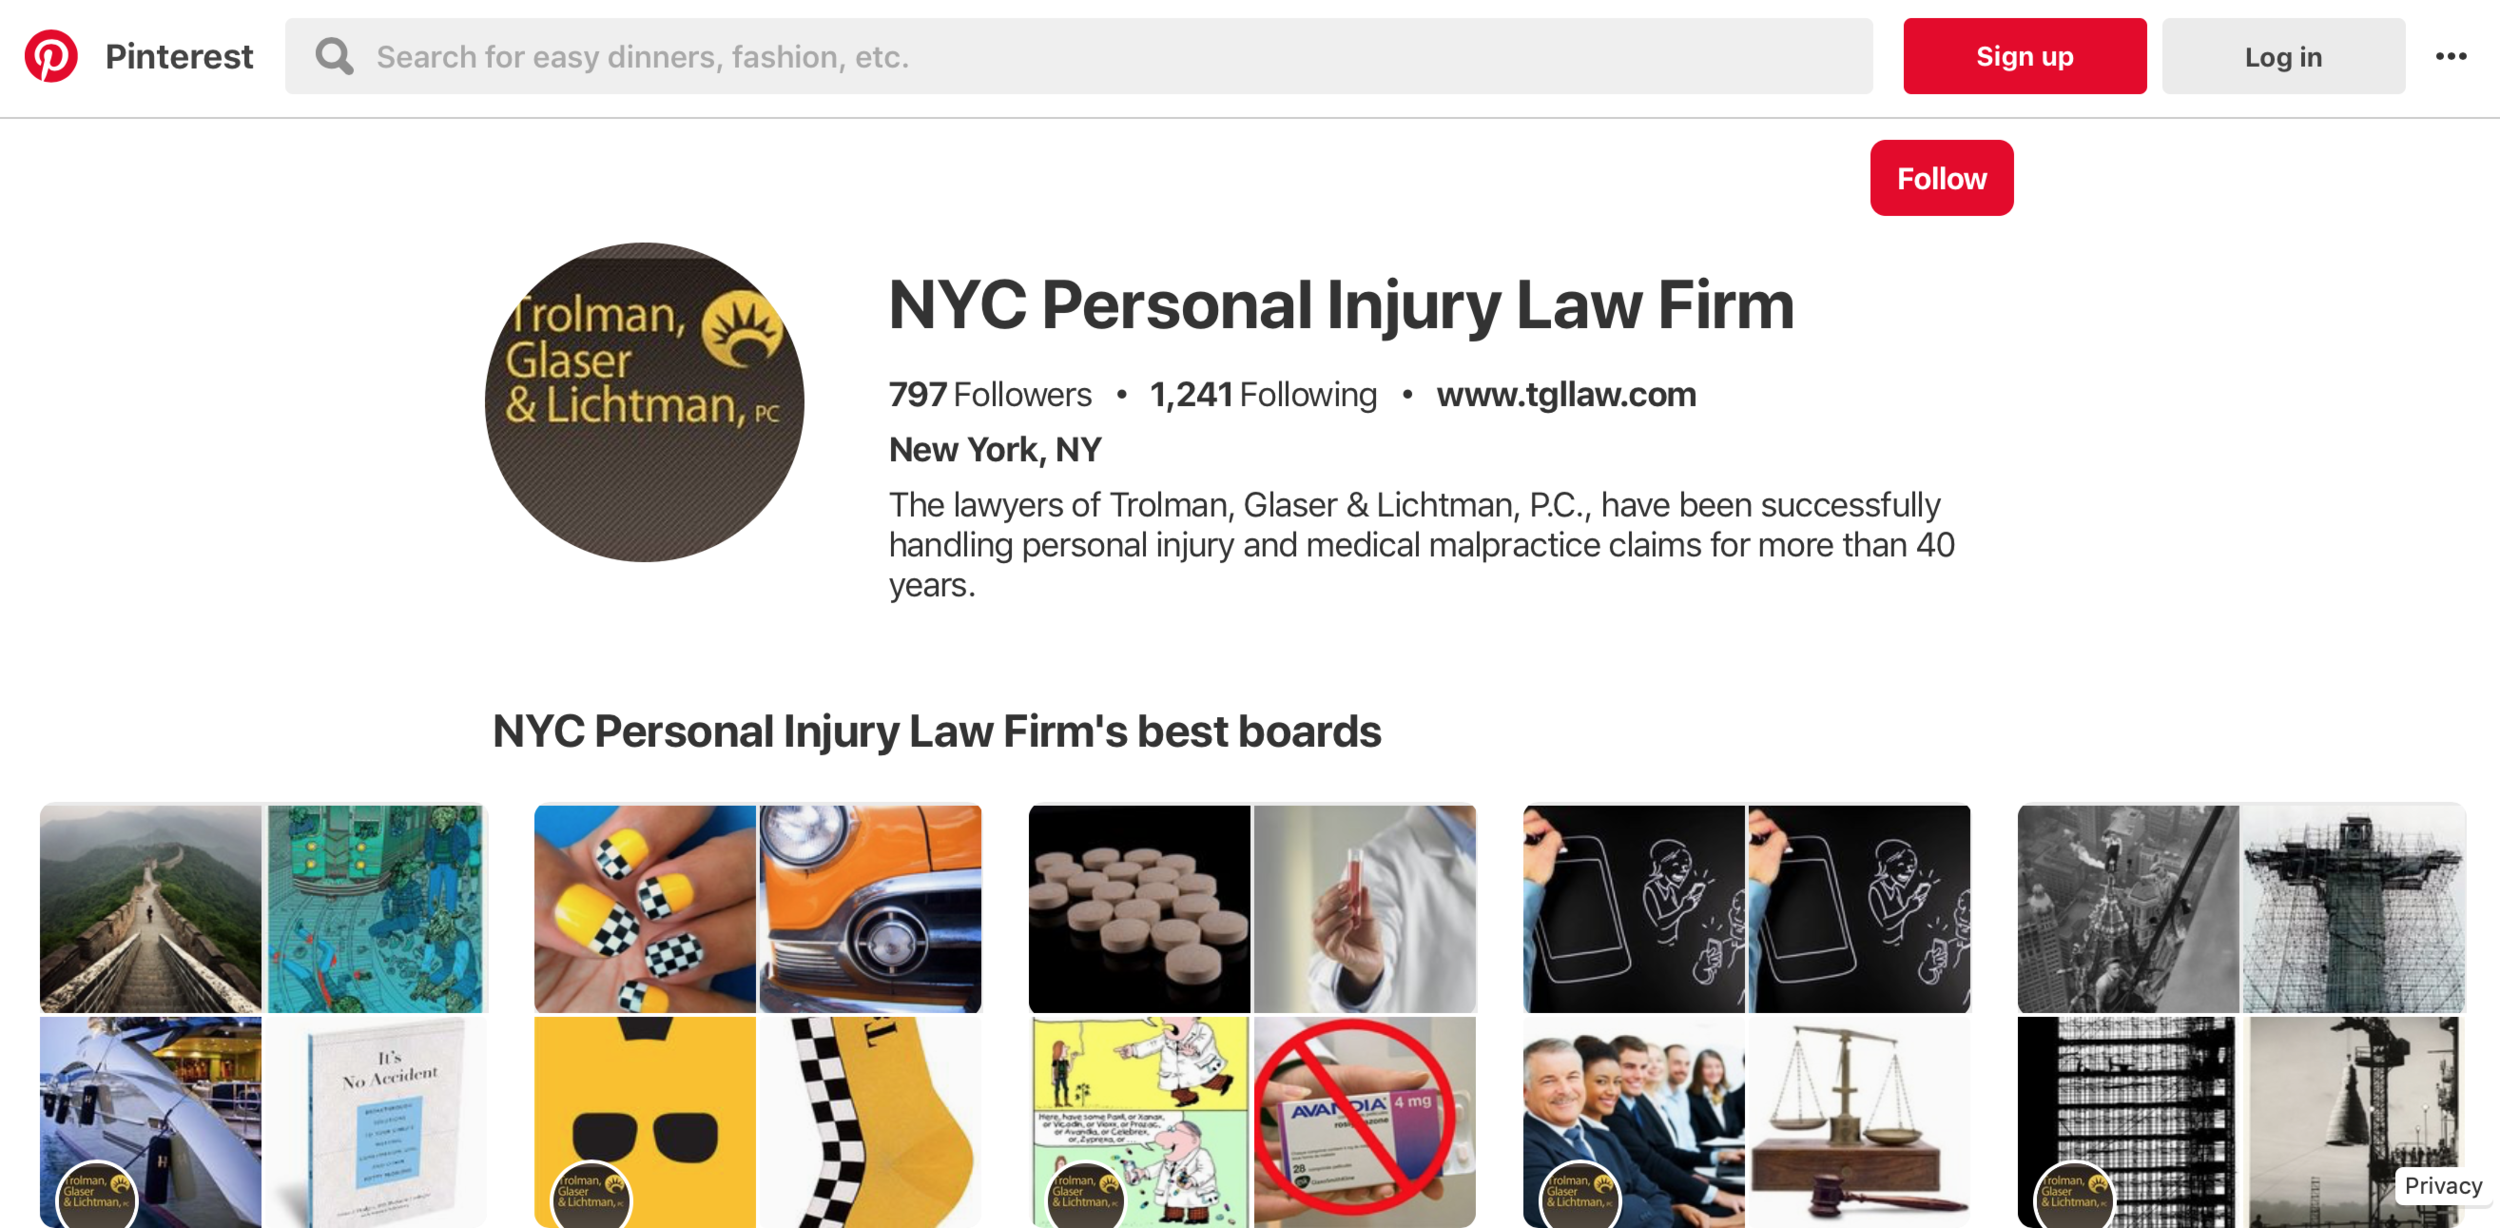 LEgal marketing on pinterest can help earn new readers and clients.